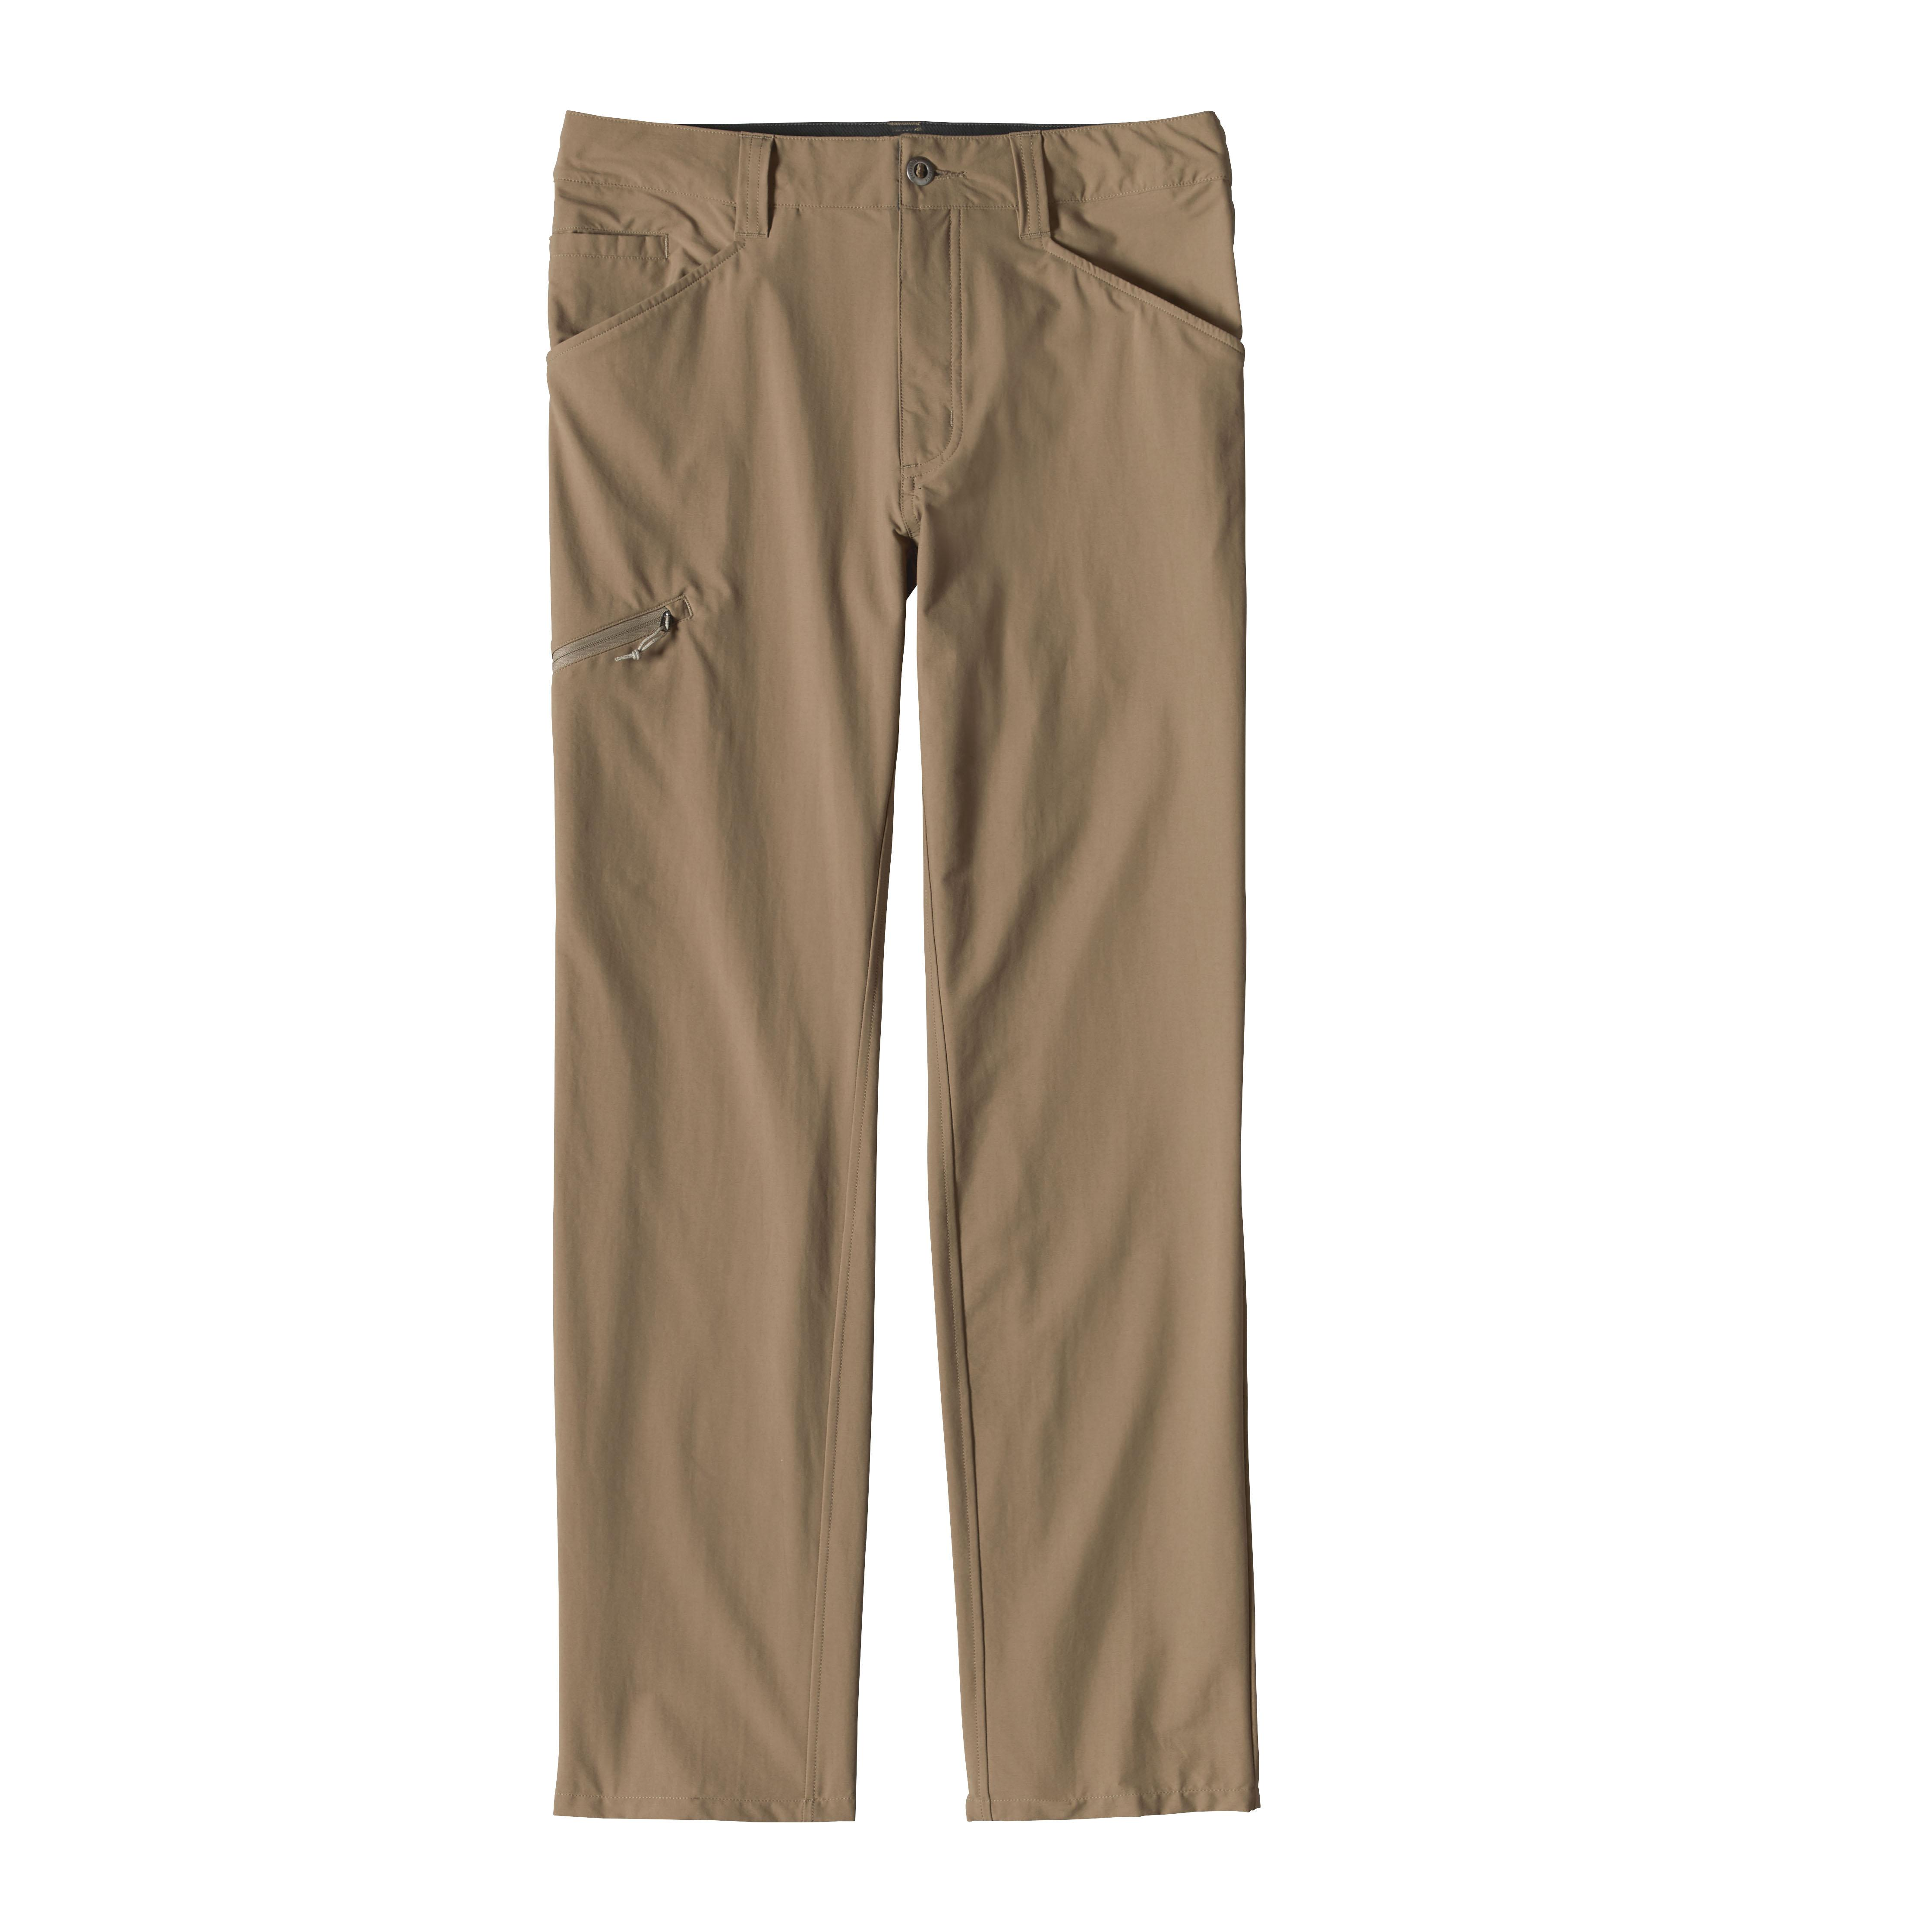 Patagonia Men's Quandary Pants 30in ASHT_TAN